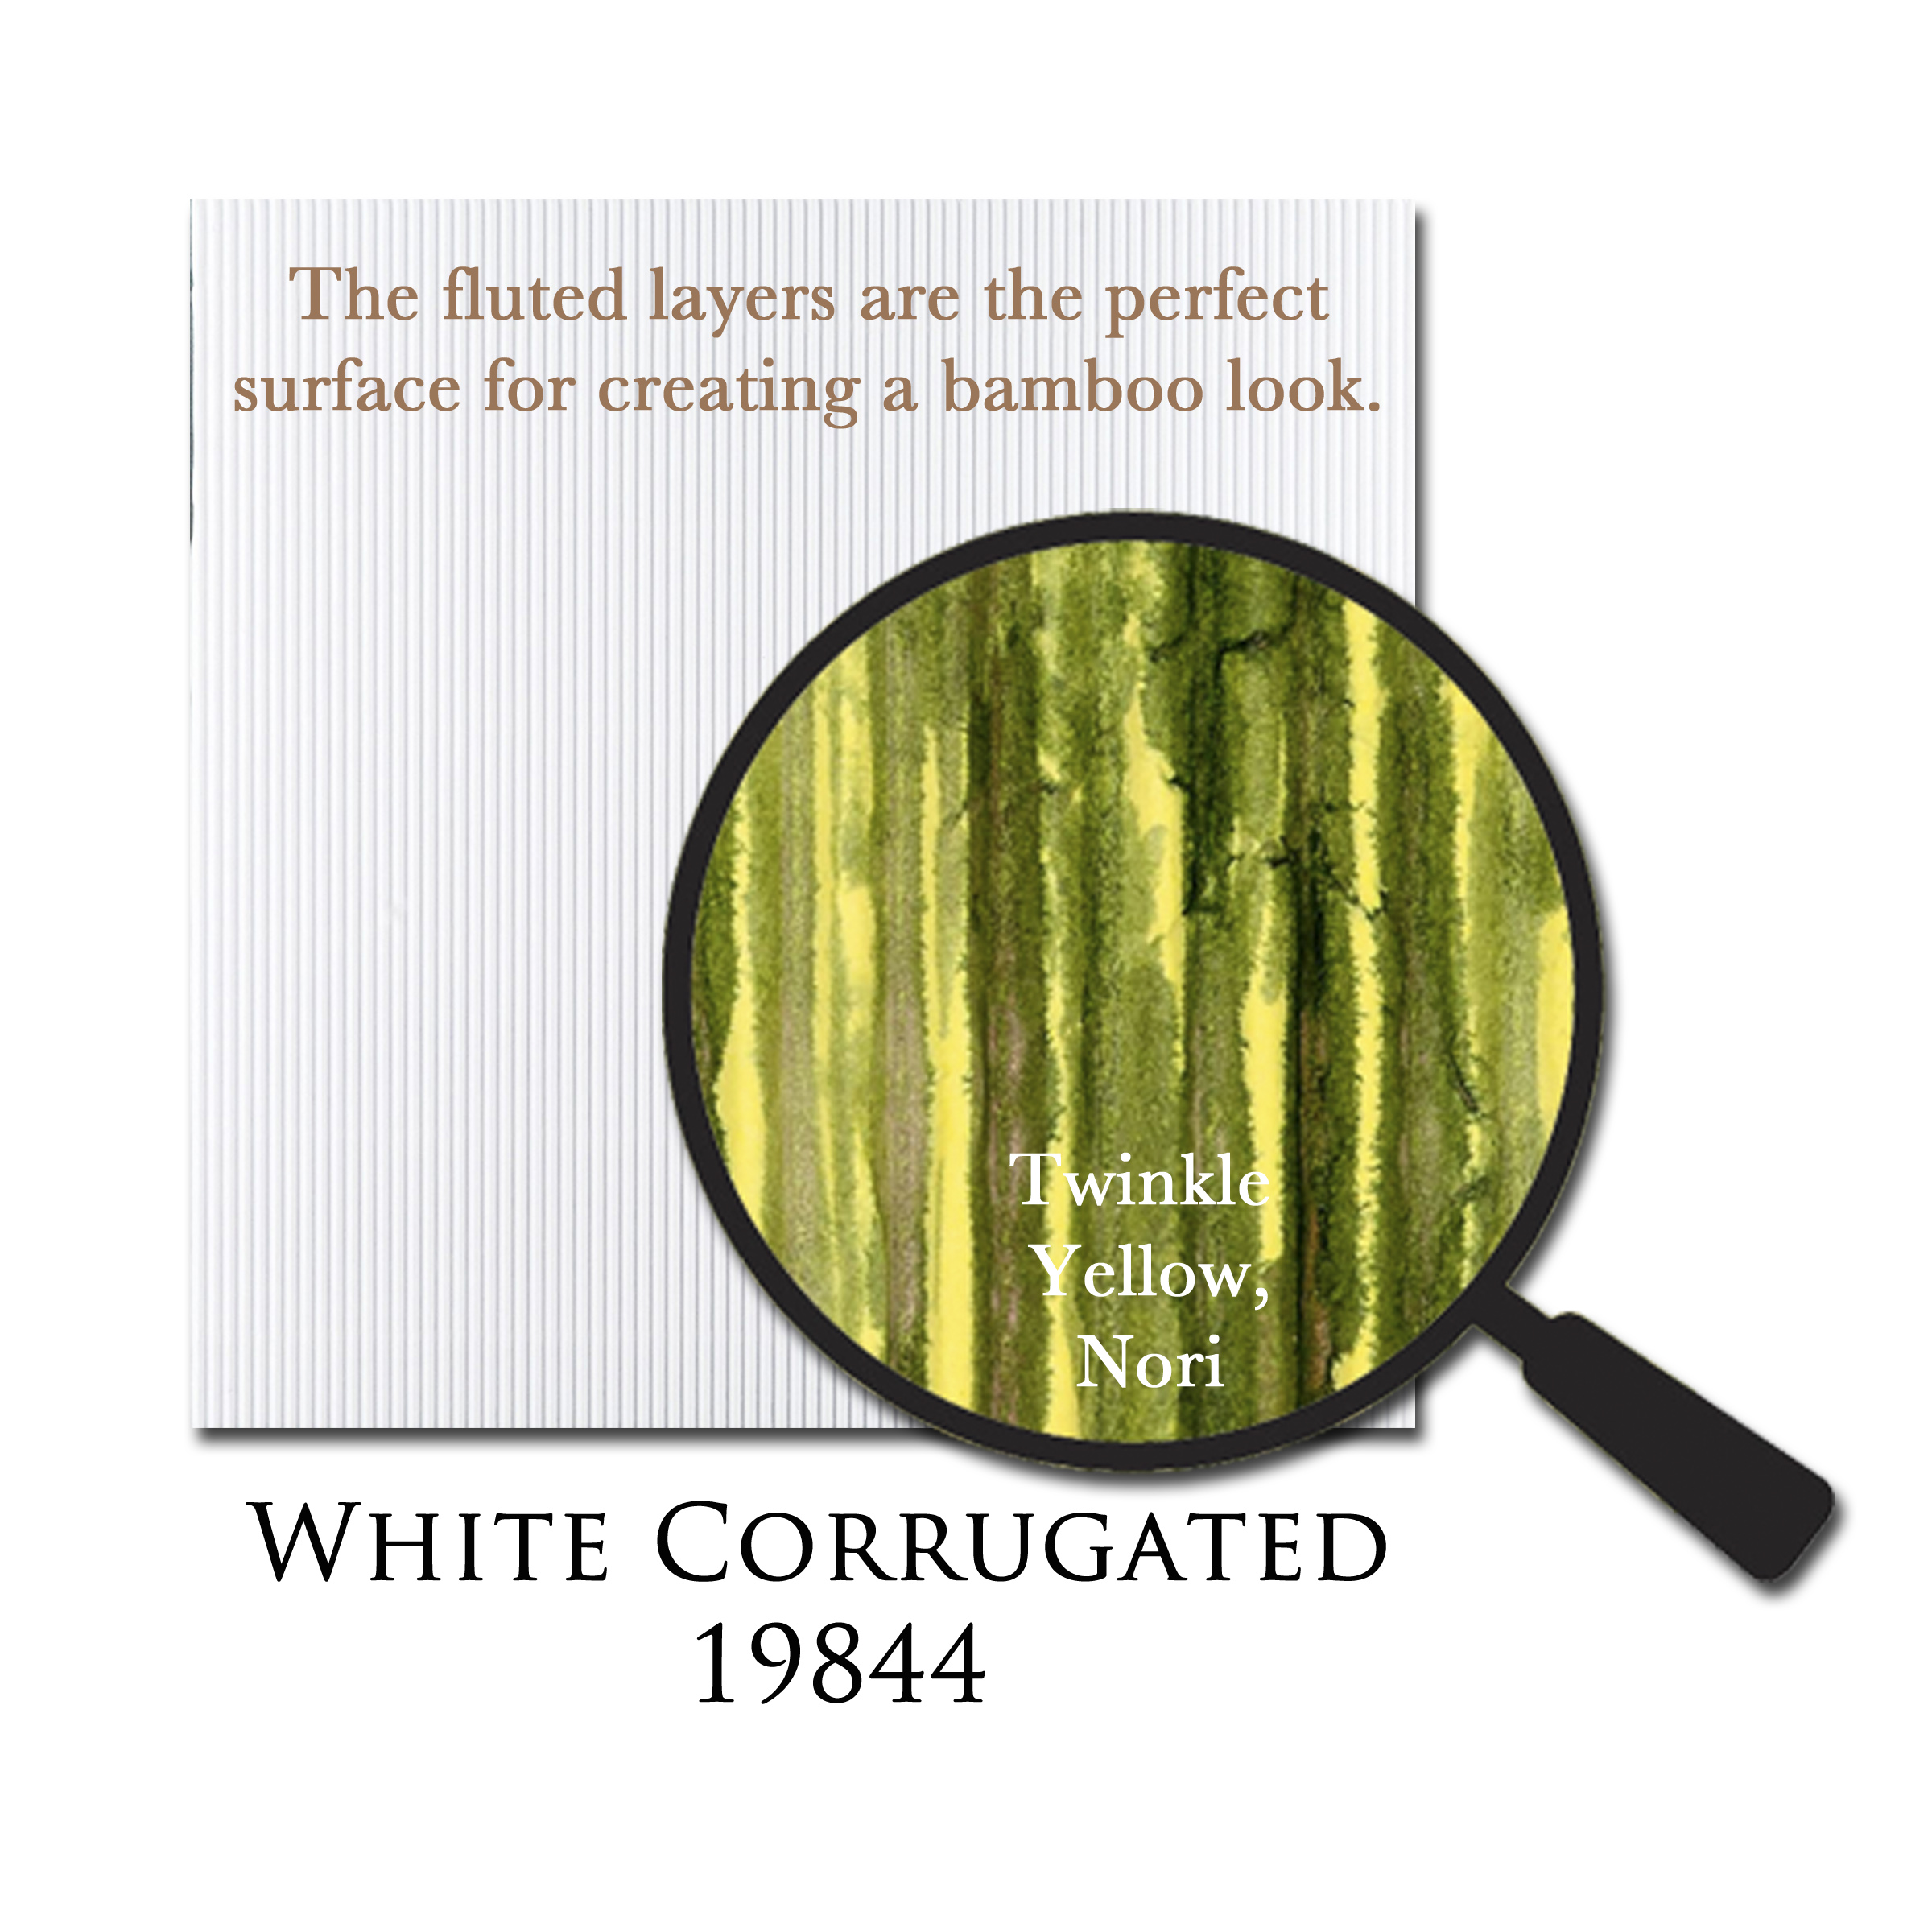 19844-white-corrugated-2